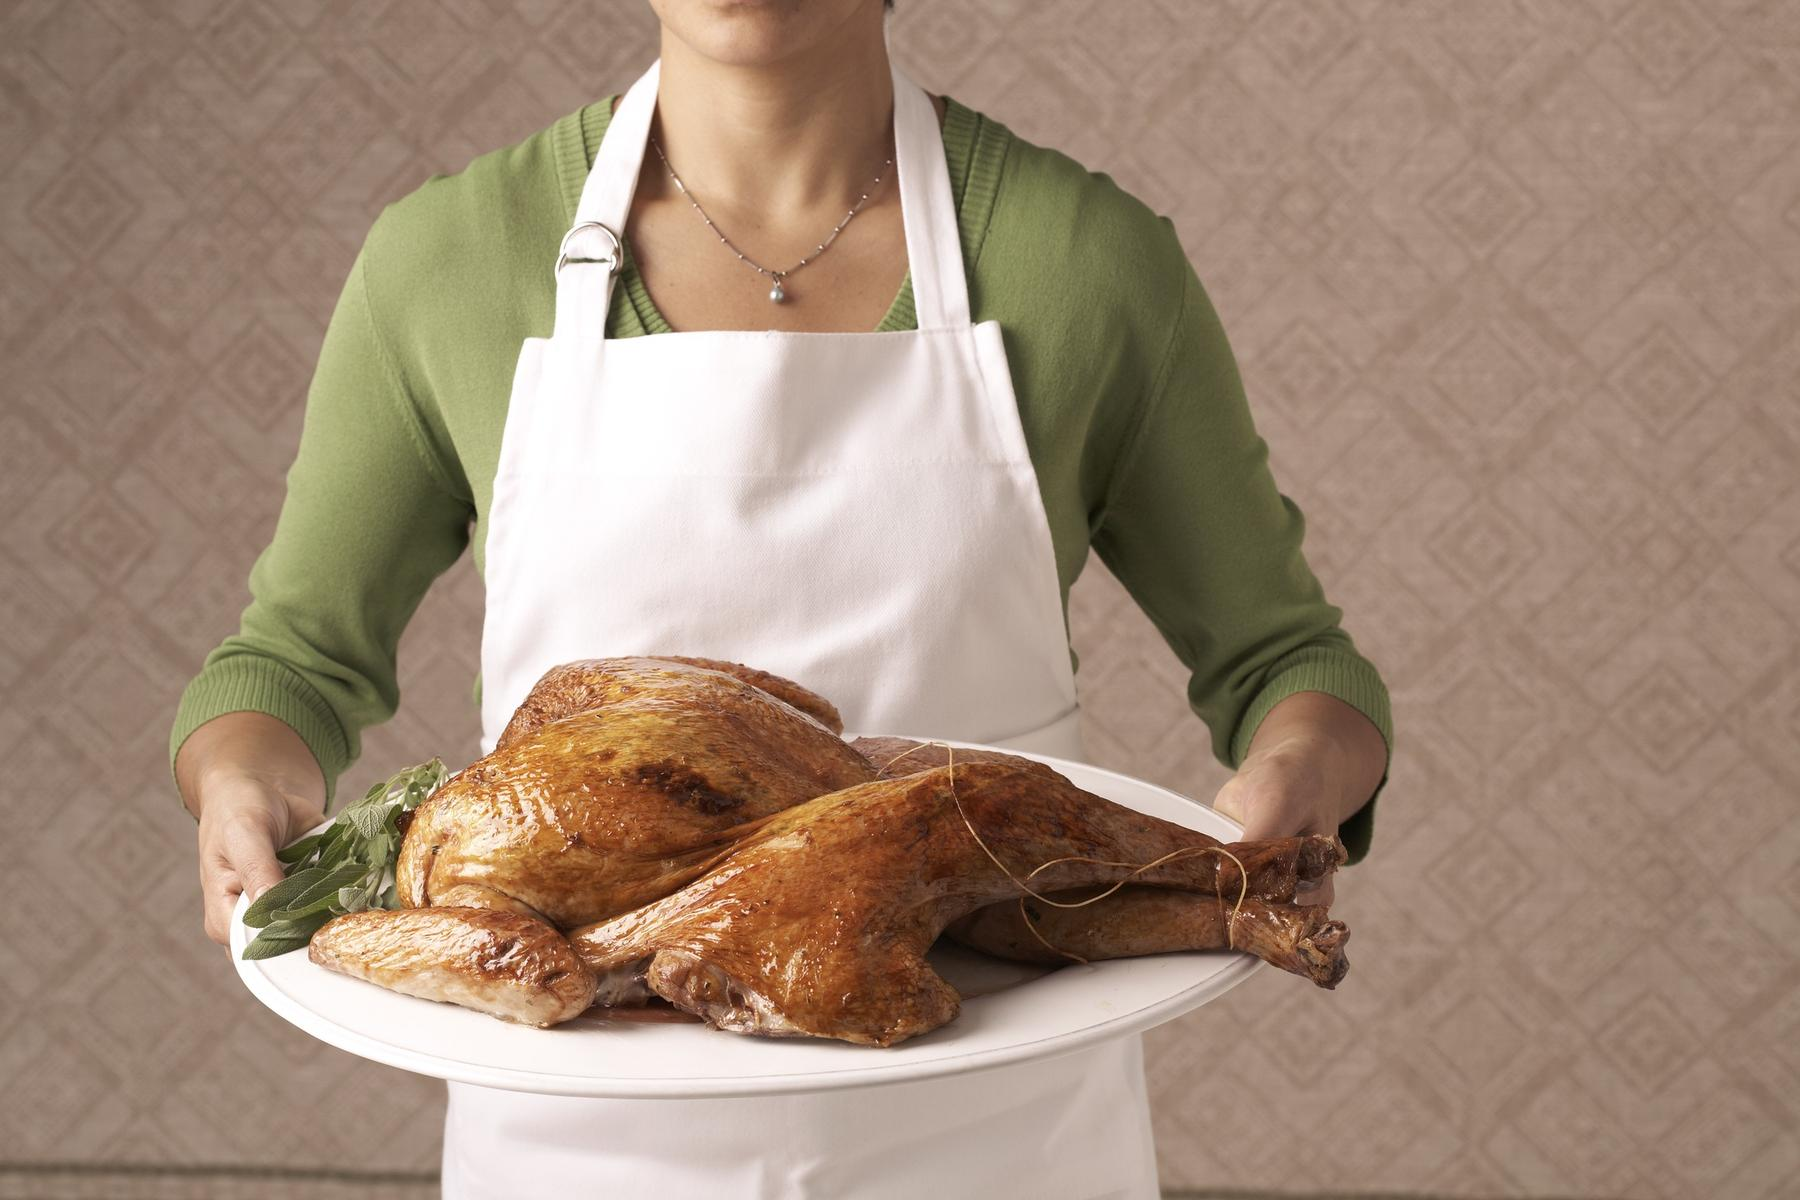 Woman with Roasted Turkey